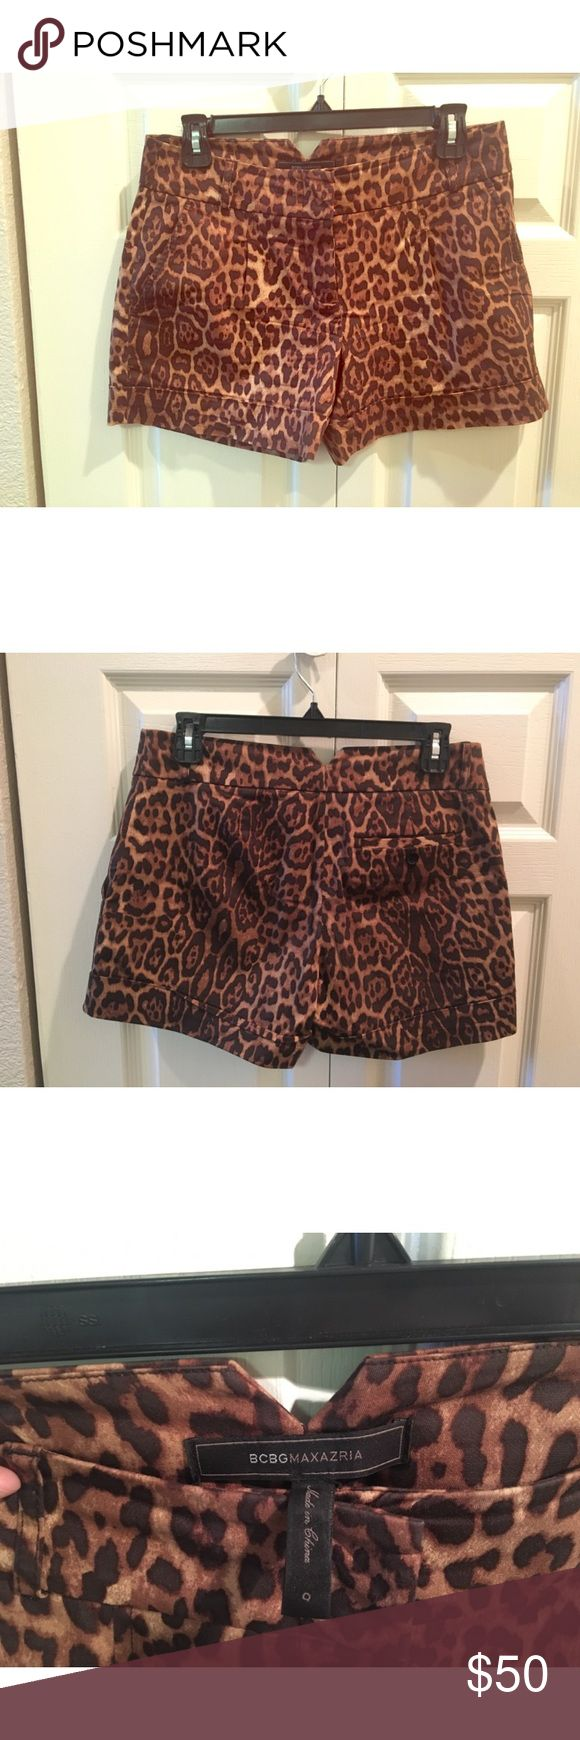 BCBG Leopard Shorts Super cute BCBG Leopard print shorts, mid rise, a bit longer in the leg, very flattering. Wide waistband with belt loops, cuffed hem, also has pockets! Great used condition, a bit wrinkled but can easily be steamed/ironed out! BCBG Shorts